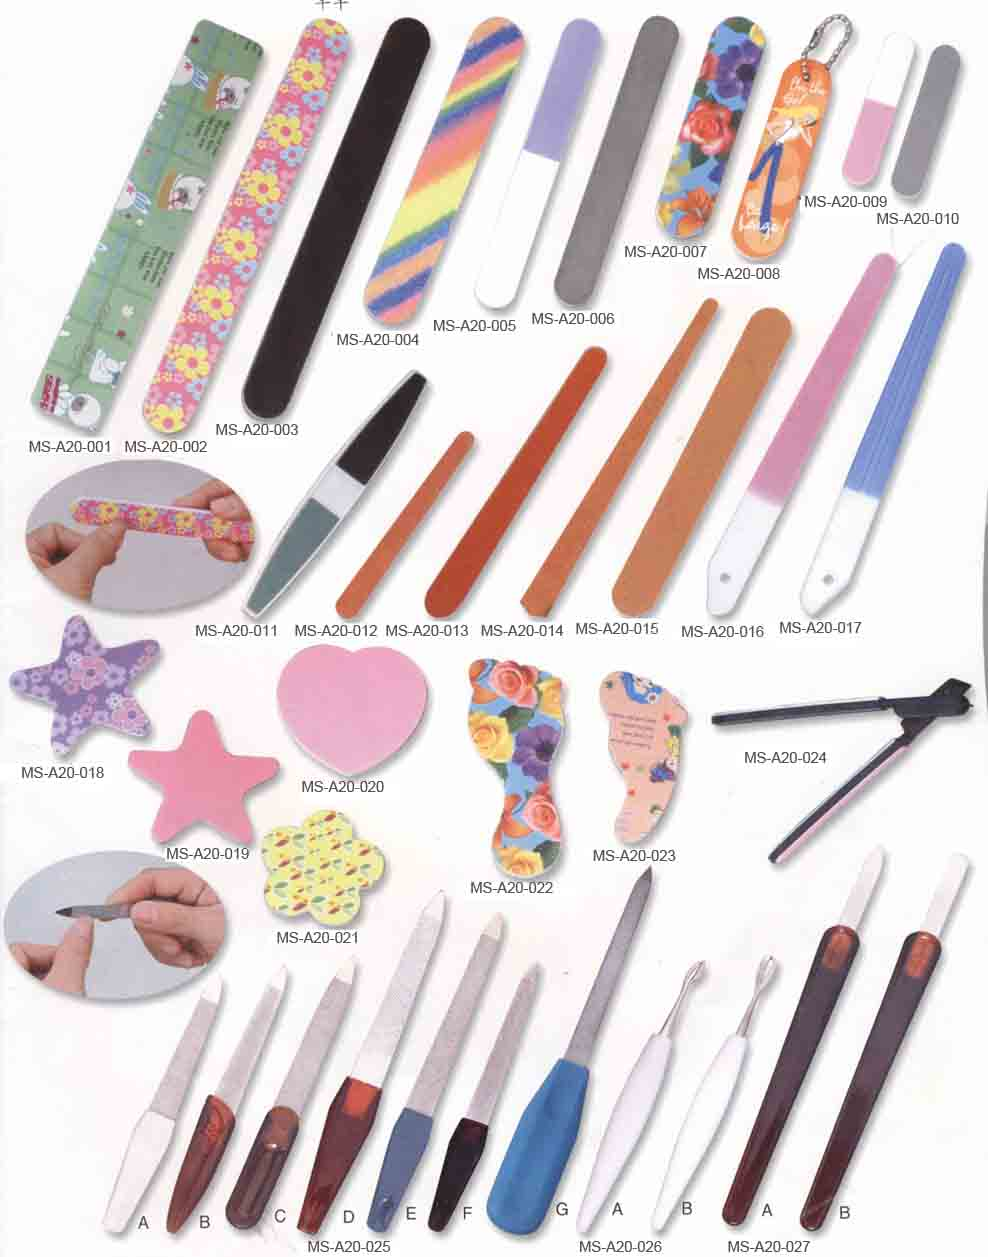 nail files and emery boards MS-A20